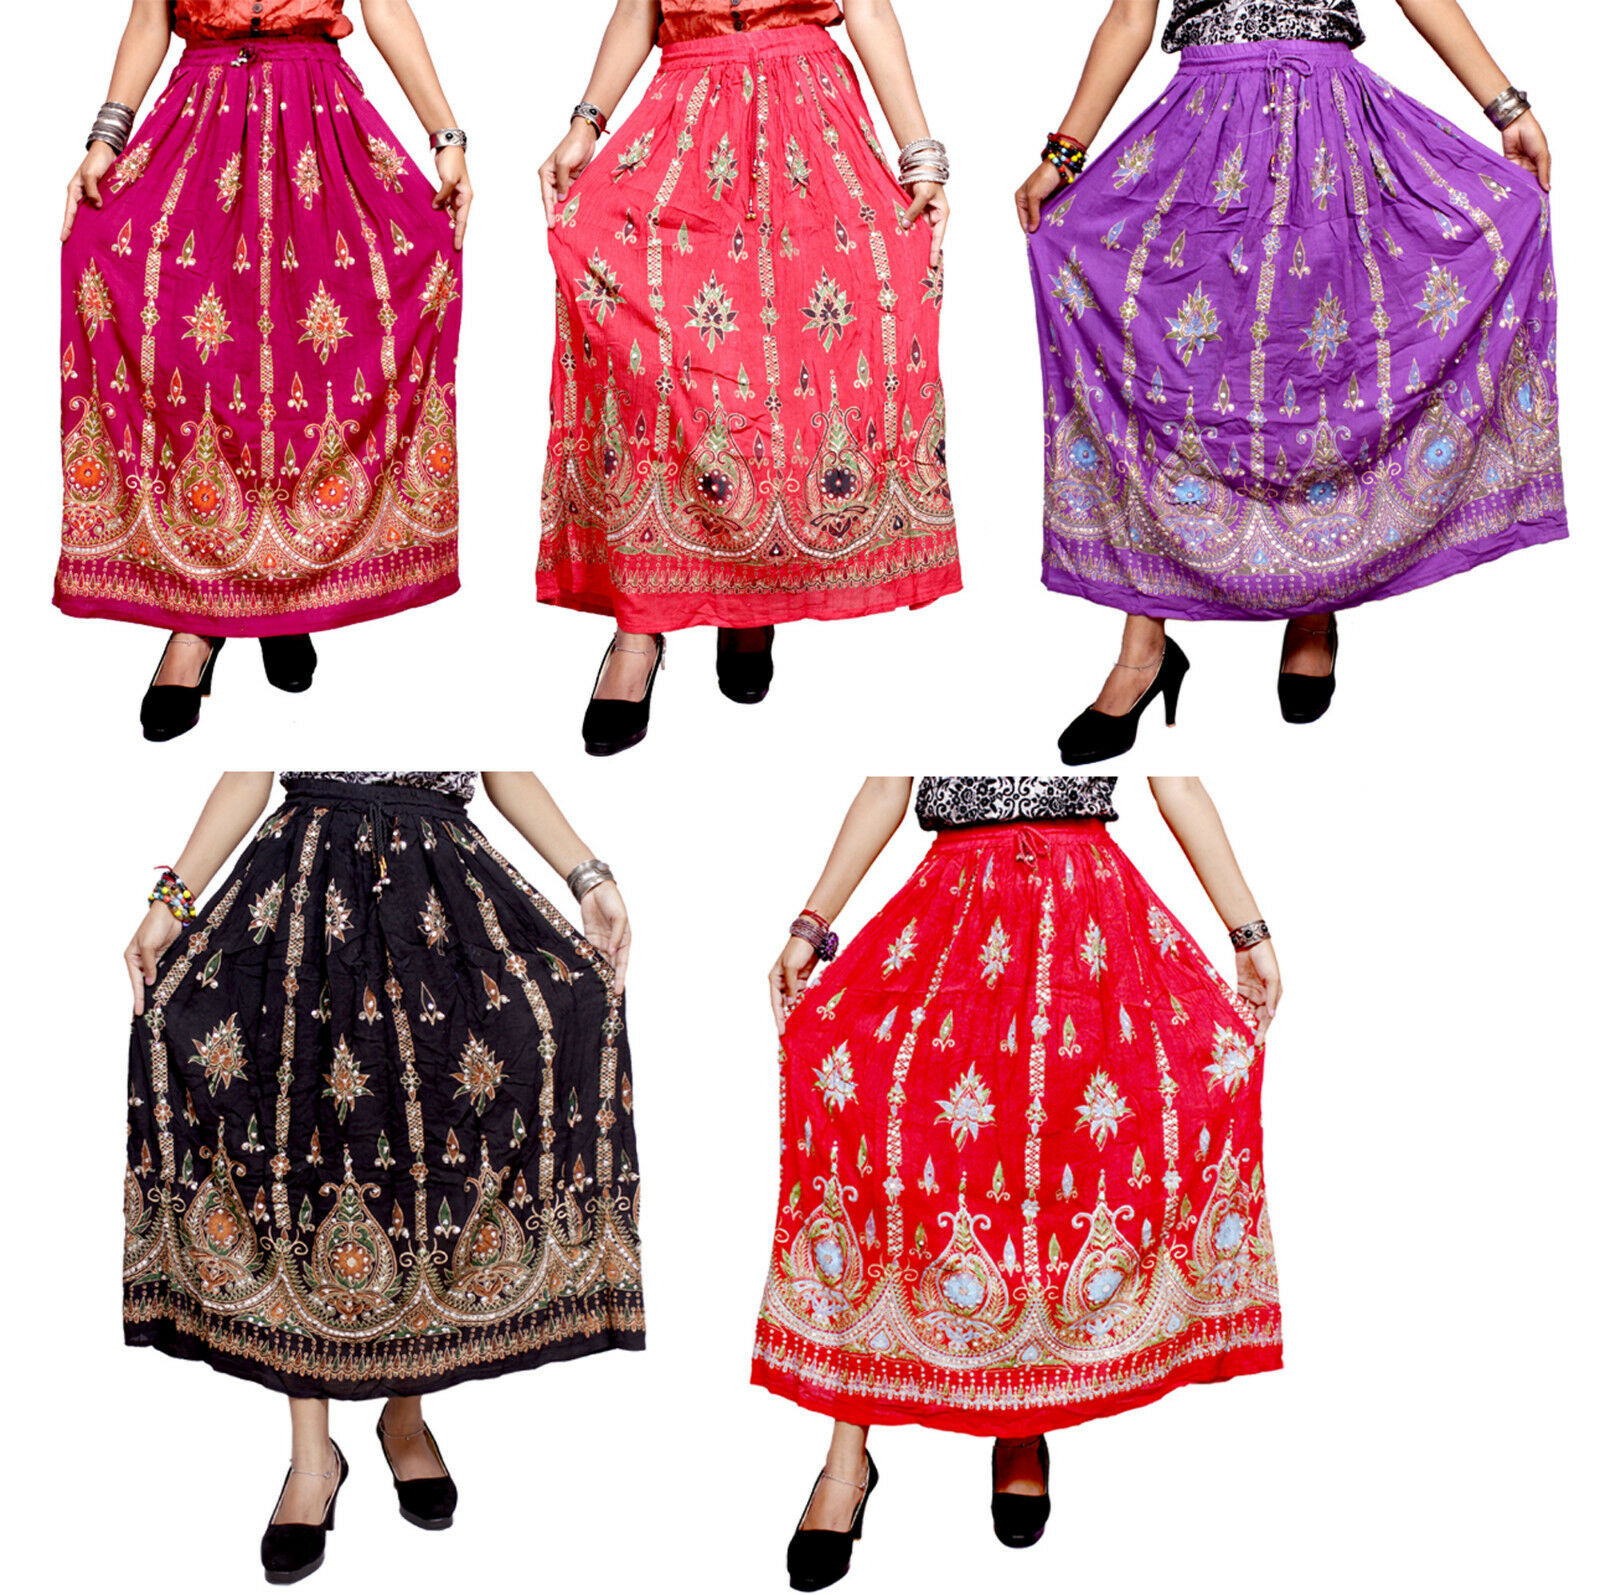 Apparels India 5Pcs-100pcs Embroidered Work USA Boho Long Skirts Wholesale Lot